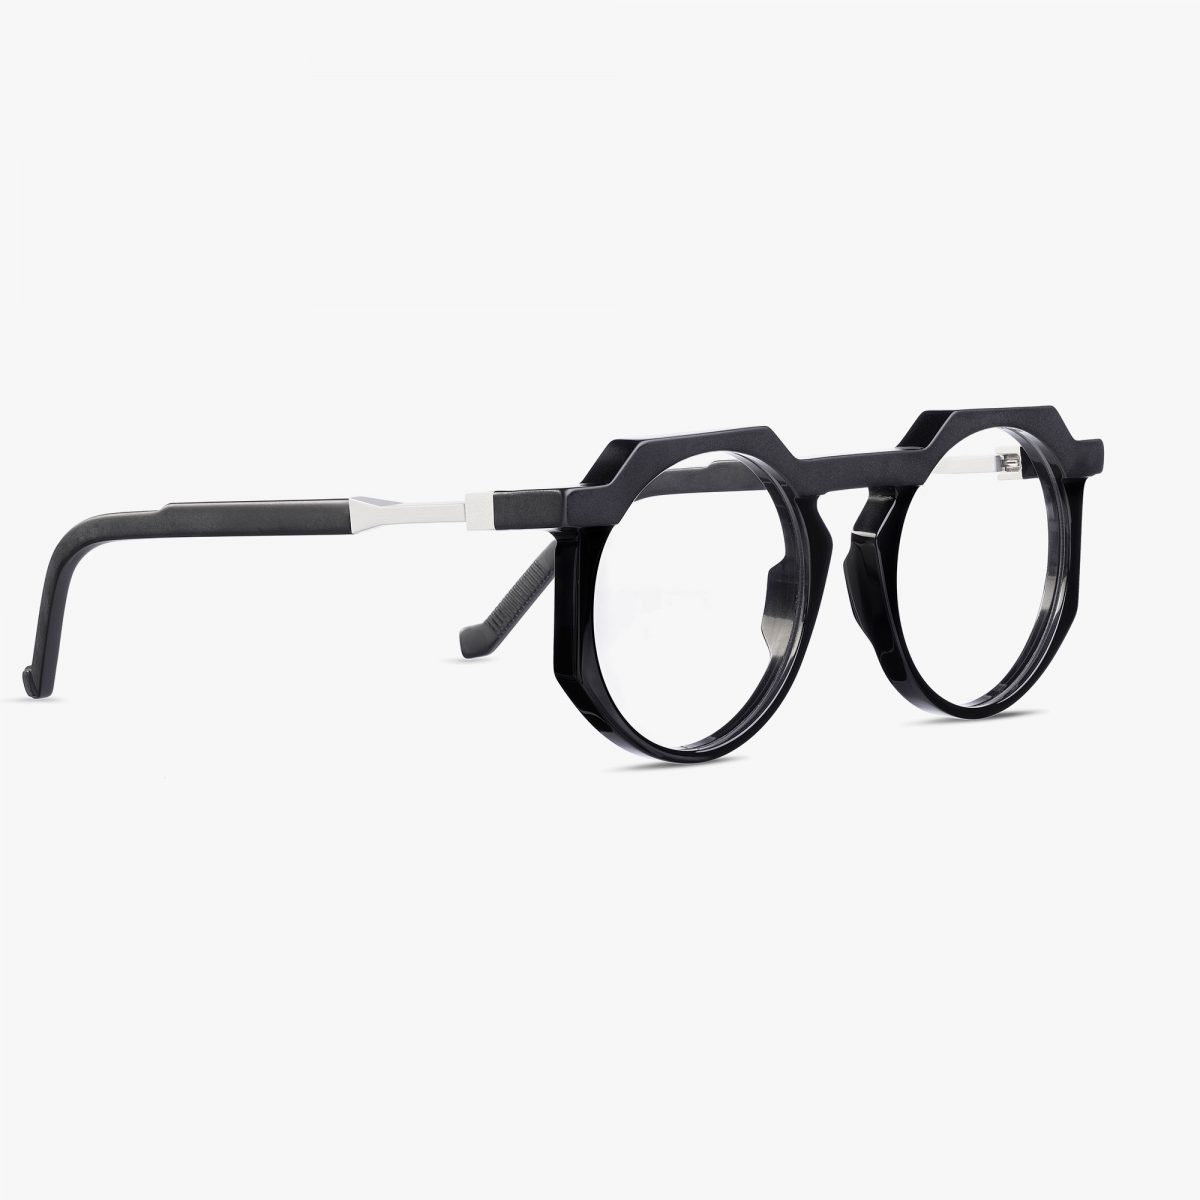 wl0027 black side vava eyewear